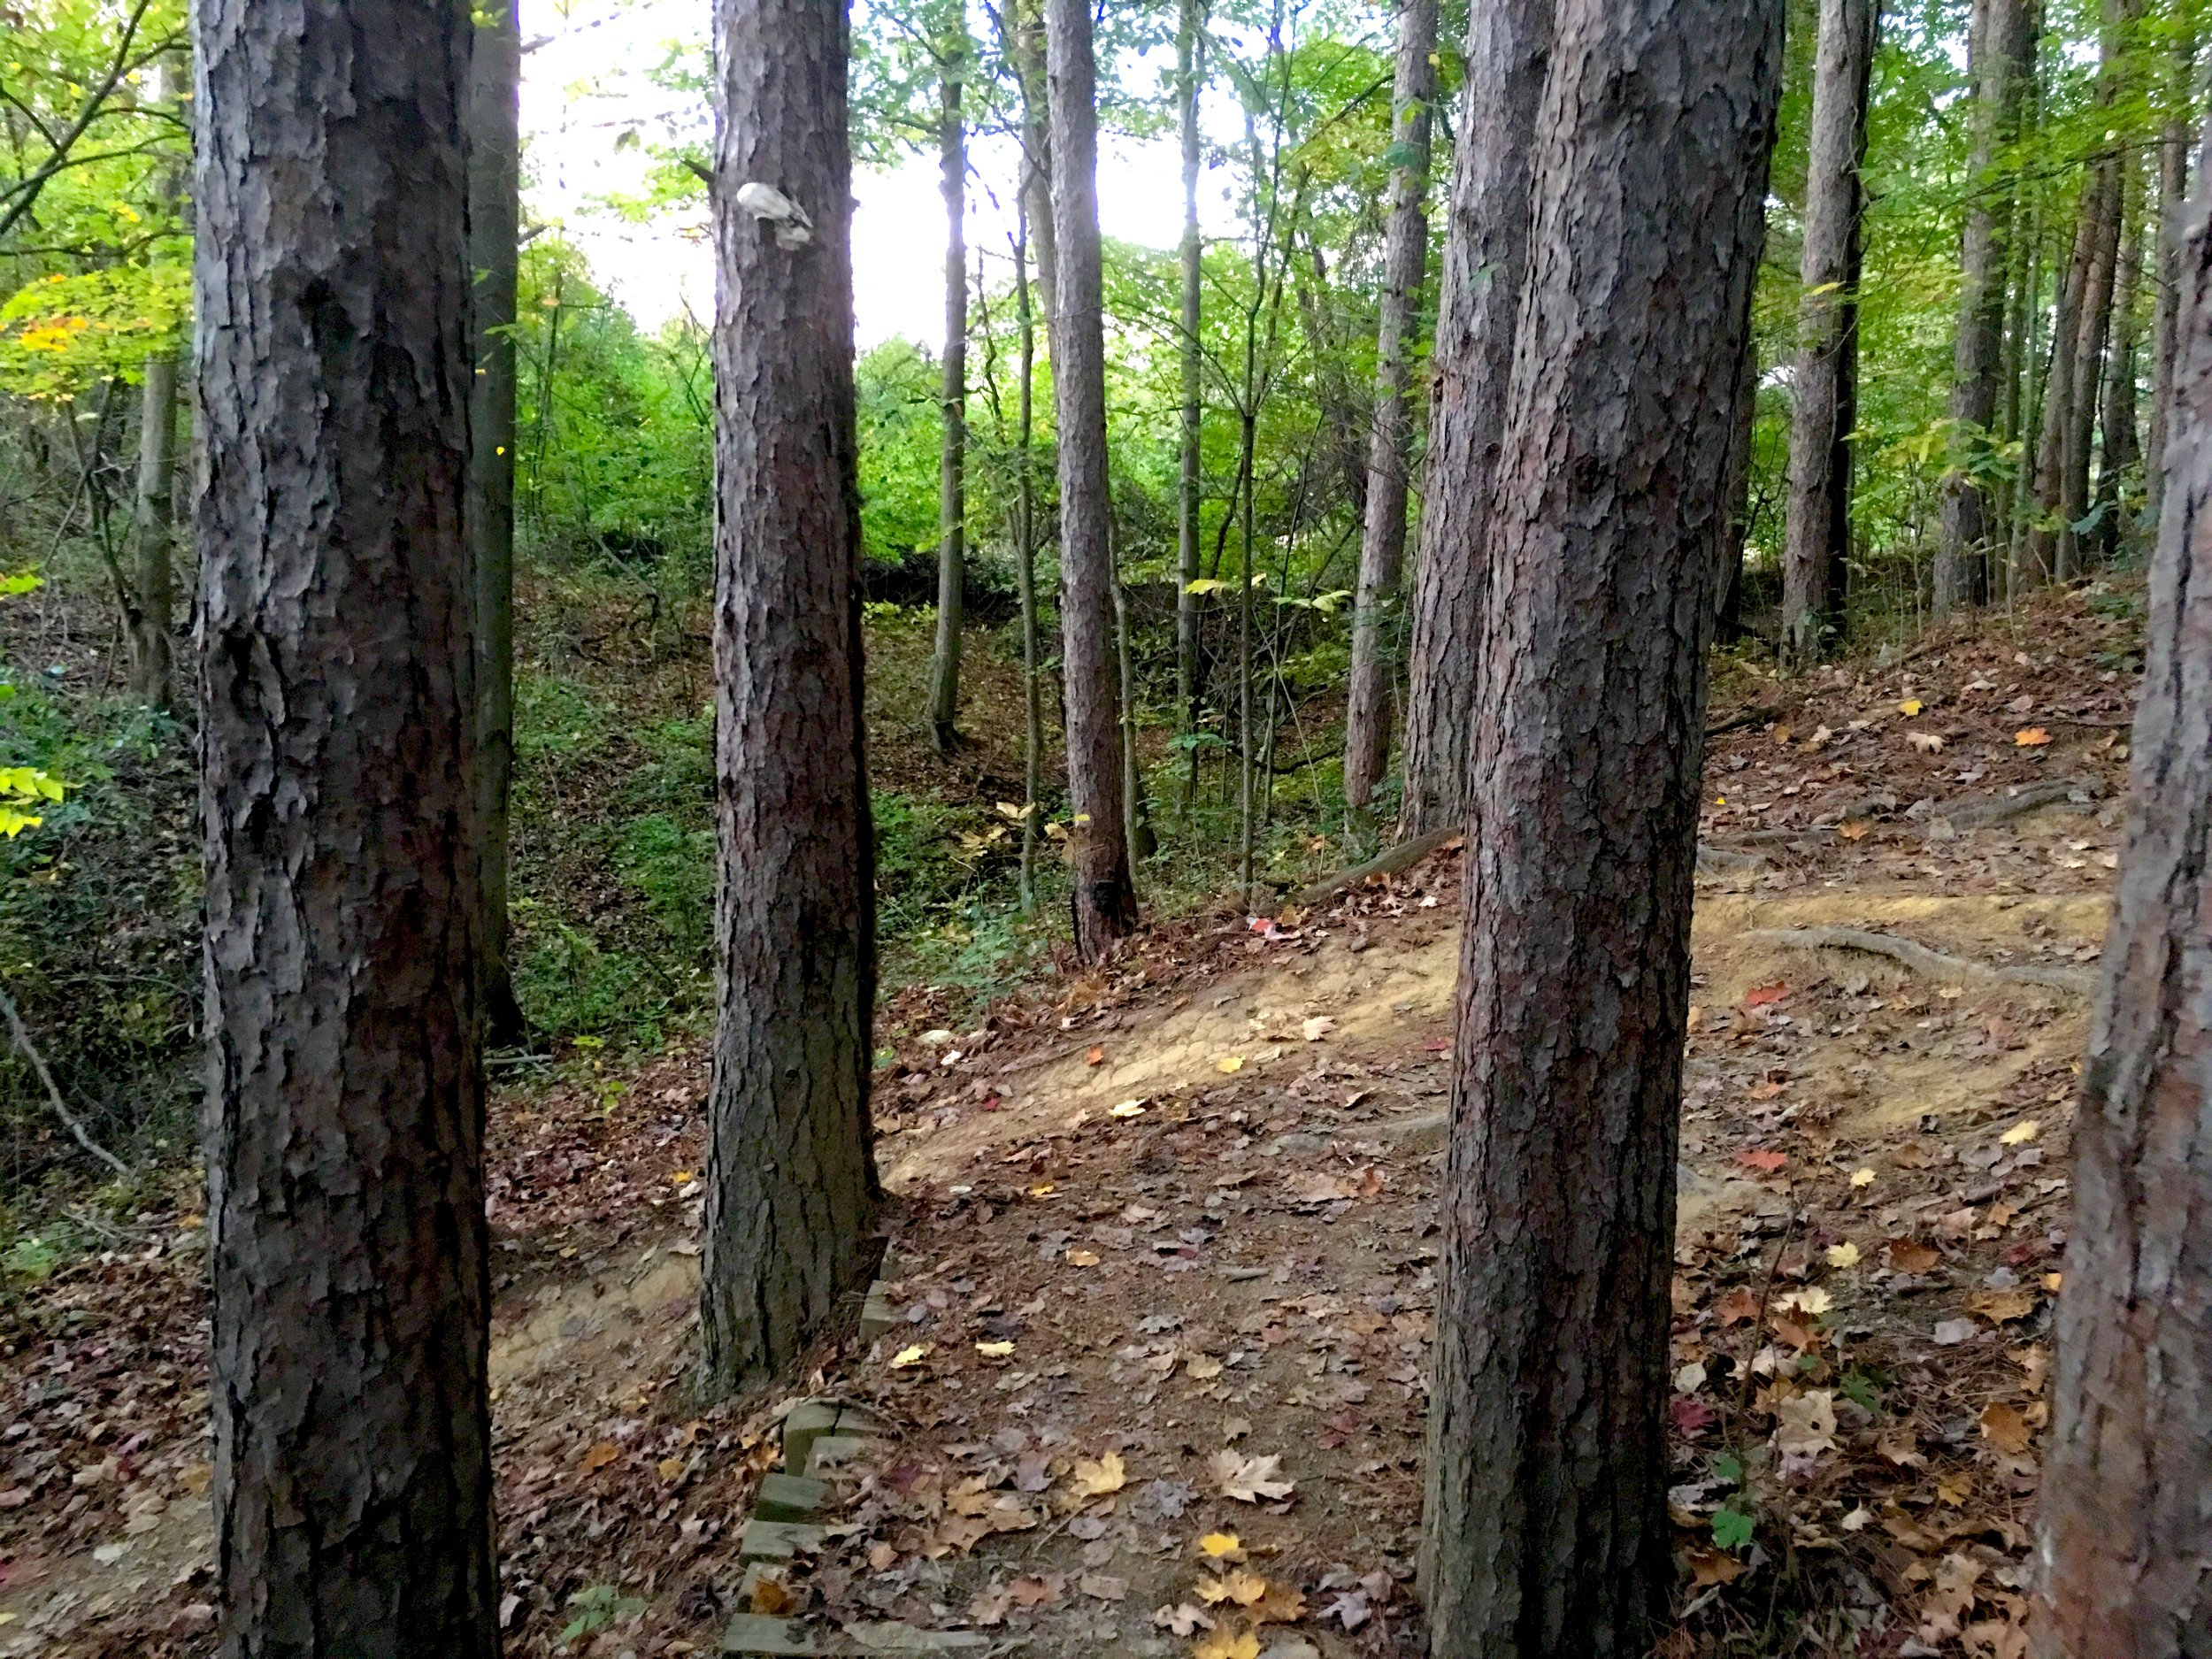 The trail has a personality that changes from season to season. Leaves are a part of that.